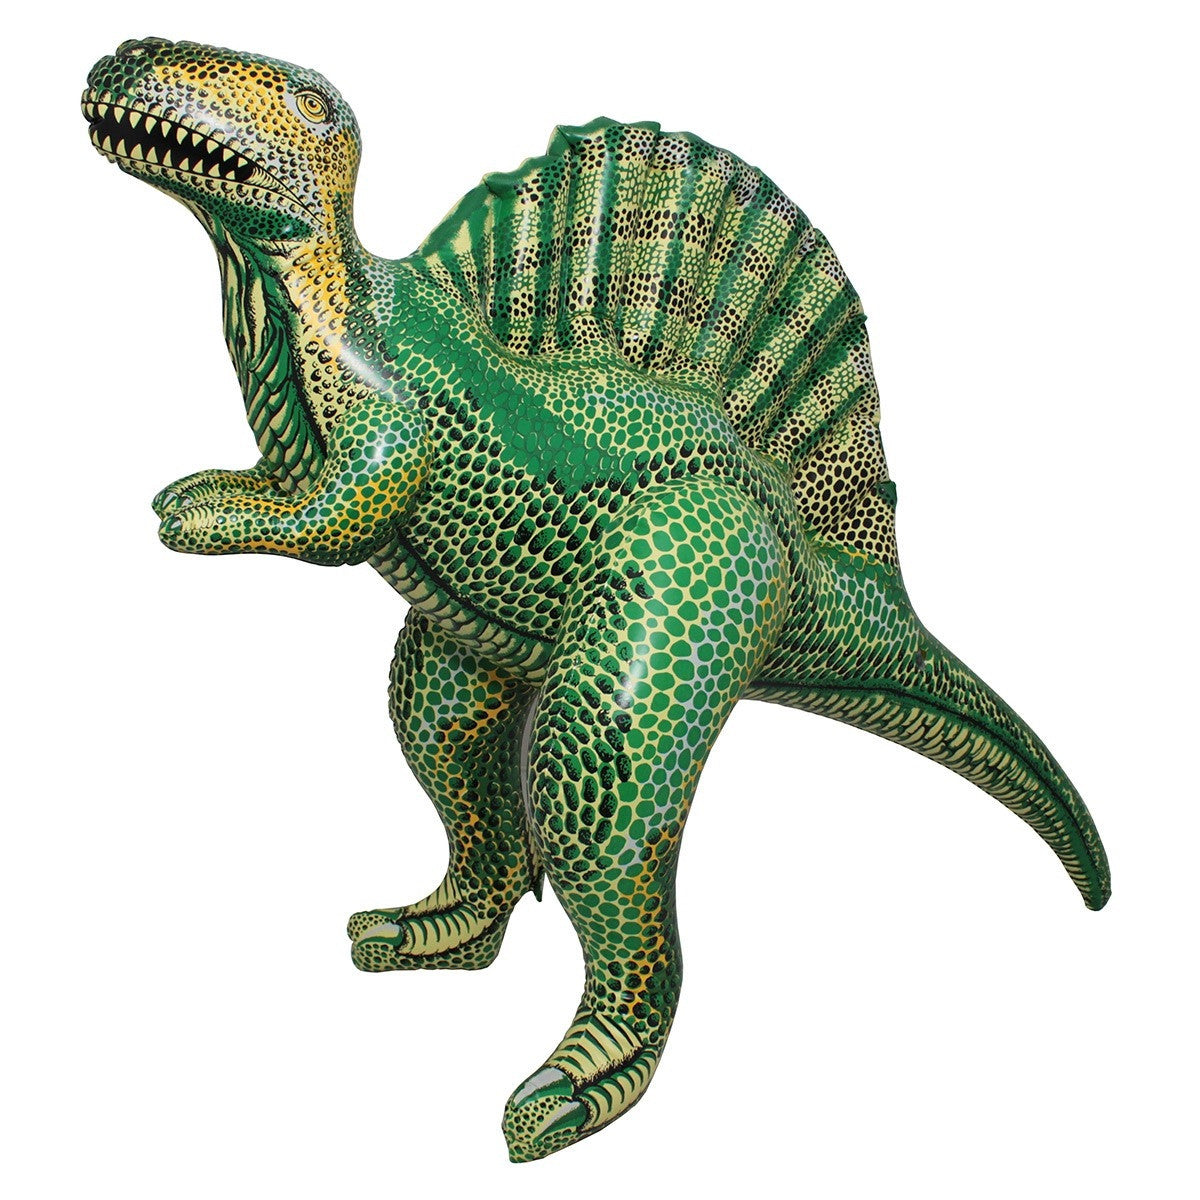 Inflatable Spinosaurus Dinosaur Model - 30 Inch Tall Dino Figure - Off The Wall Toys and Gifts